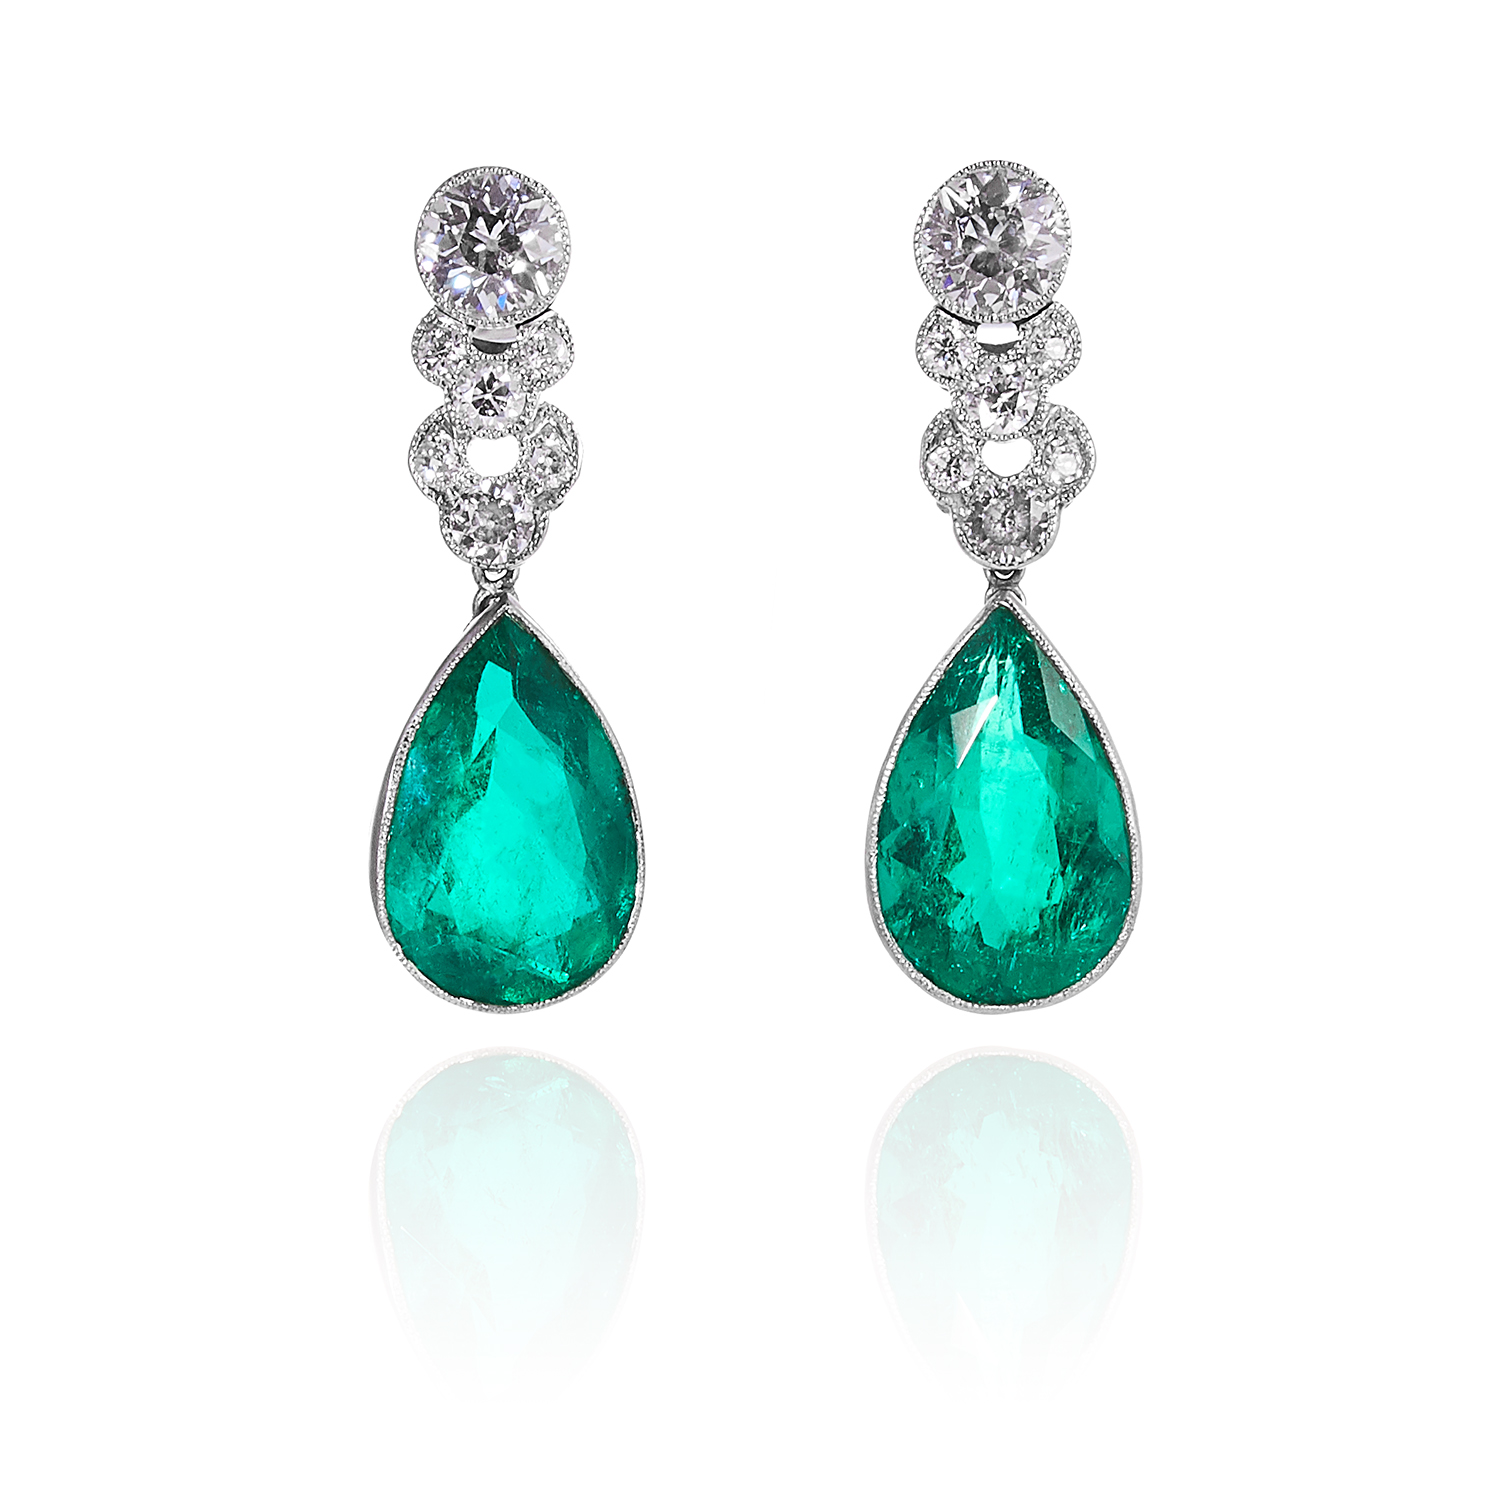 Pair of Colombian Emerald and Diamond Earrings. Photo: Elmwood's